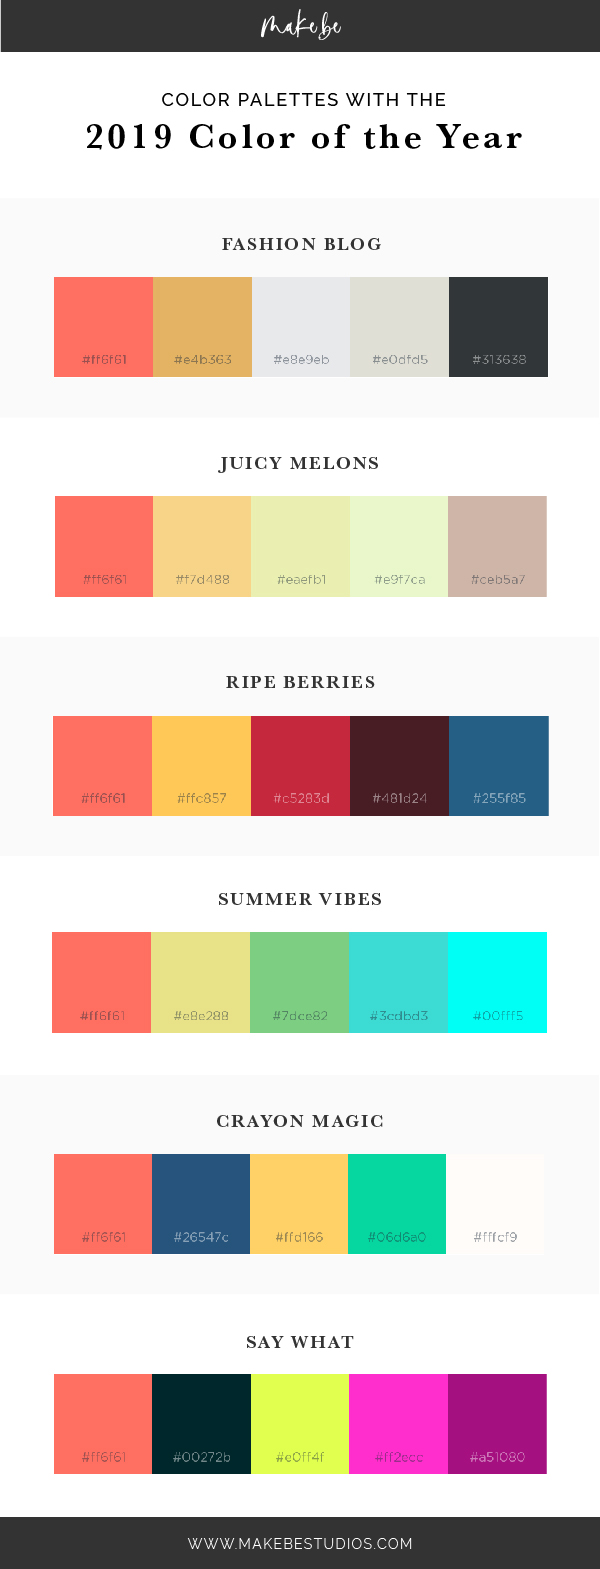 color palettes pantone color of the year 2019-100.jpg